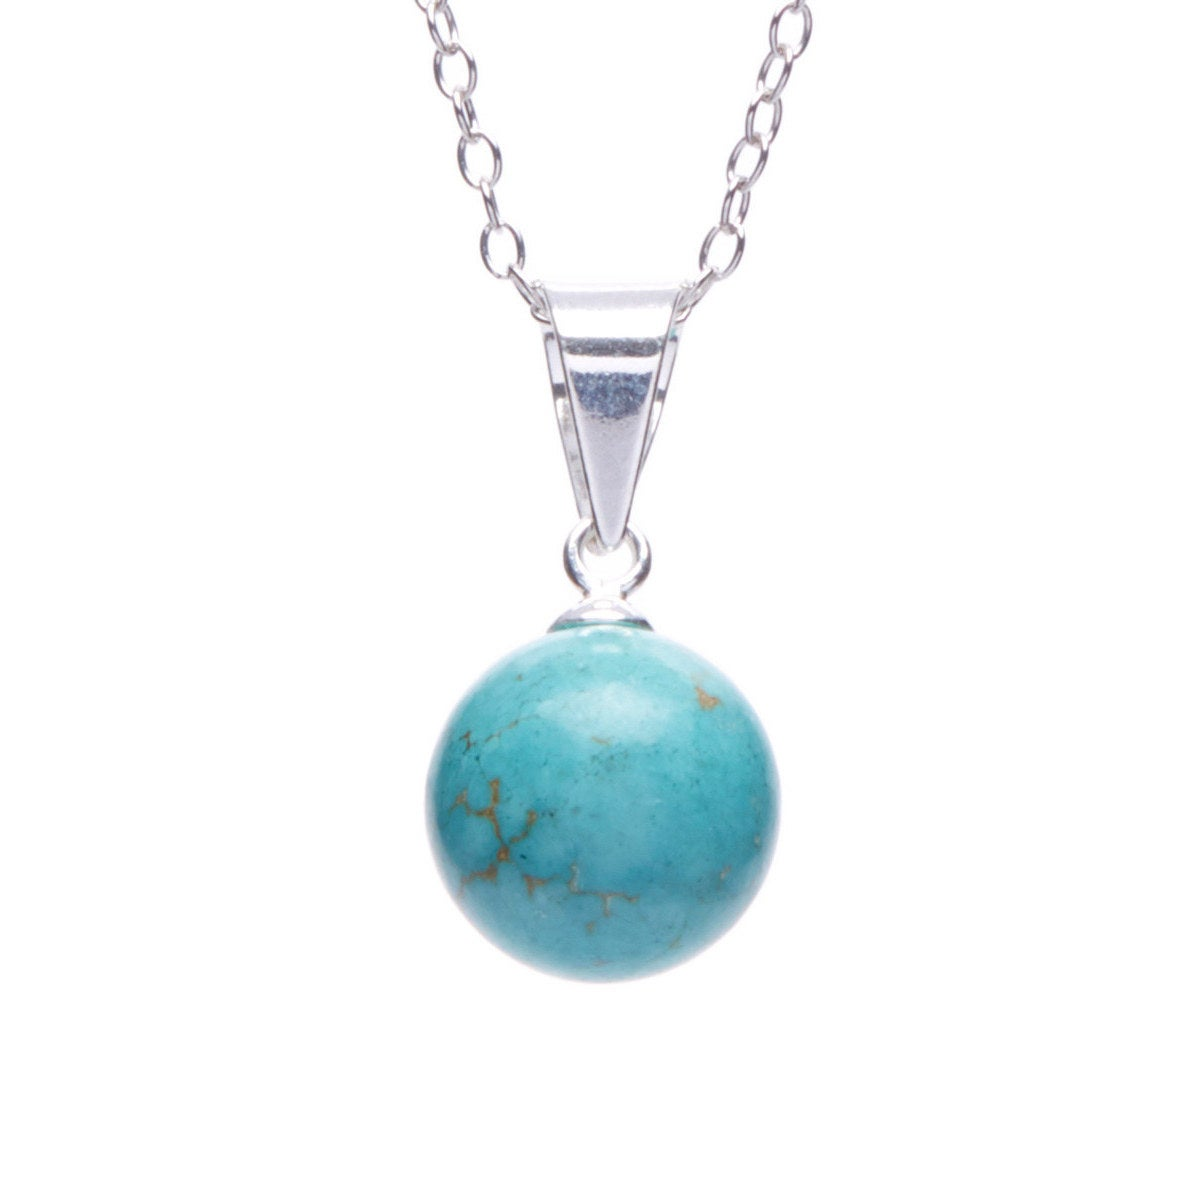 Pori sterling silver ball pendant necklace free shipping on orders pori sterling silver ball pendant necklace free shipping on orders over 45 overstock 17895342 aloadofball Images